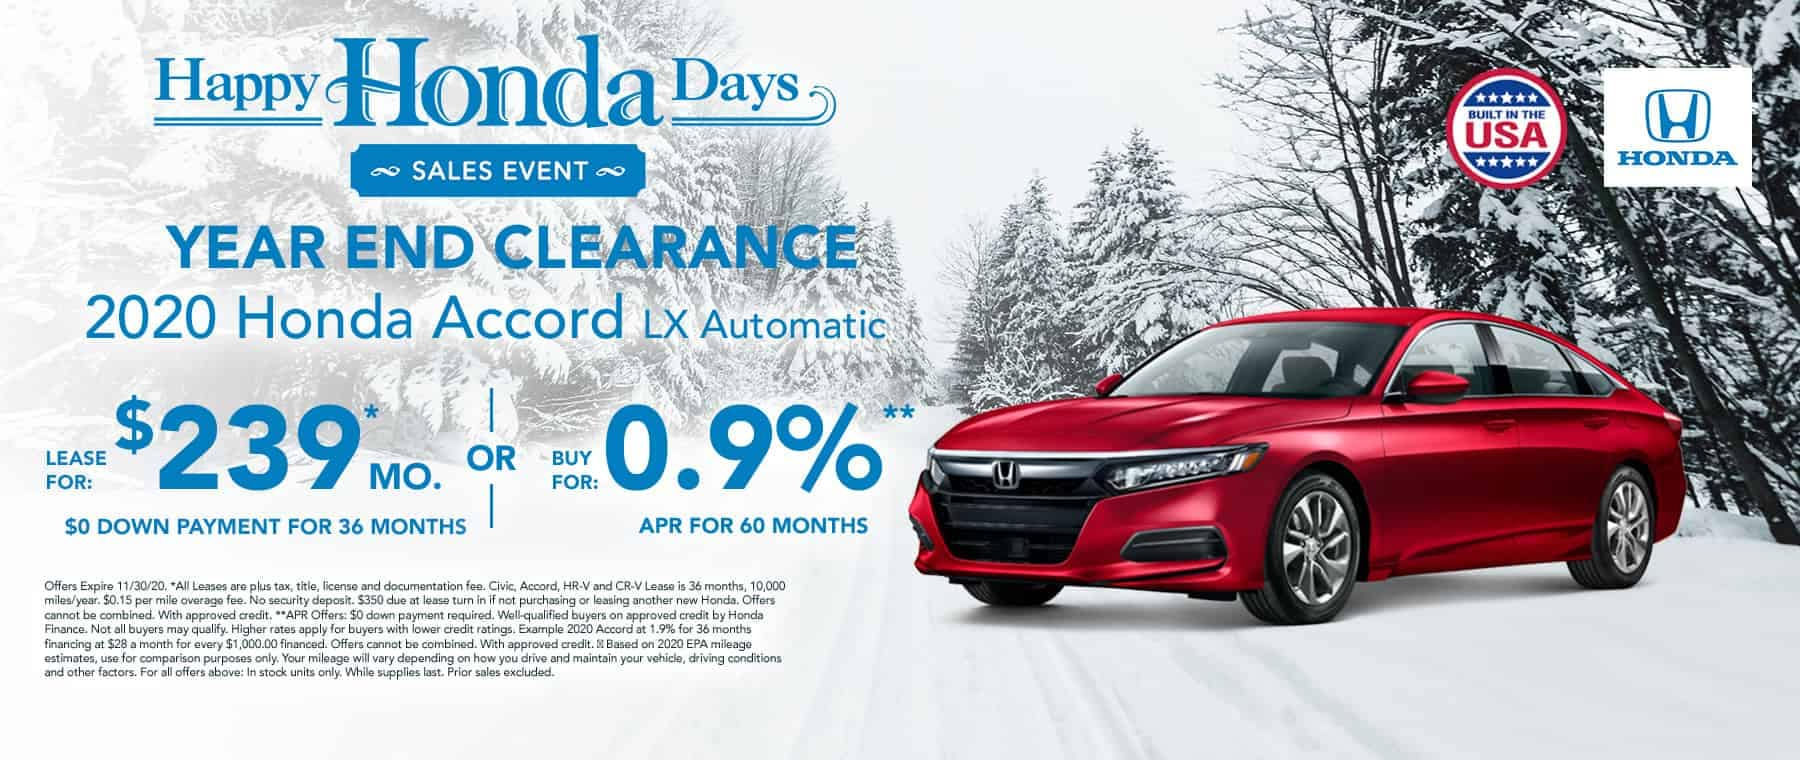 New Honda Accord for $239 per month